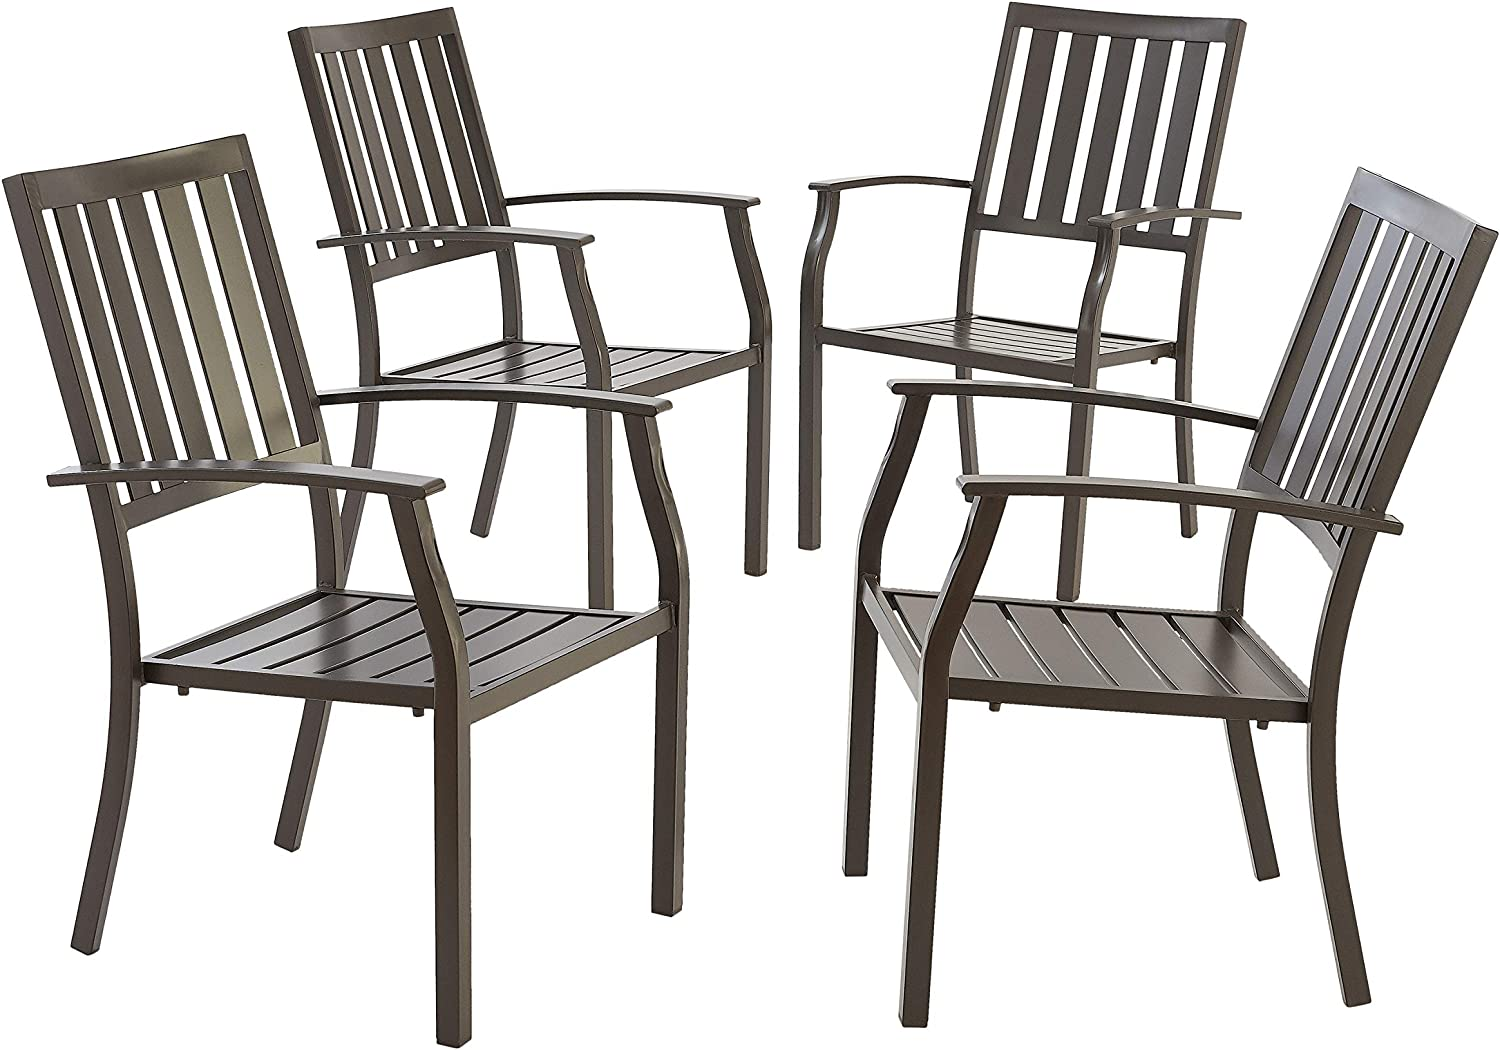 Better Homes & Gardens Camrose Farmhouse Mix and Match Slat-Back Stacking Dining Chairs, Set of 4